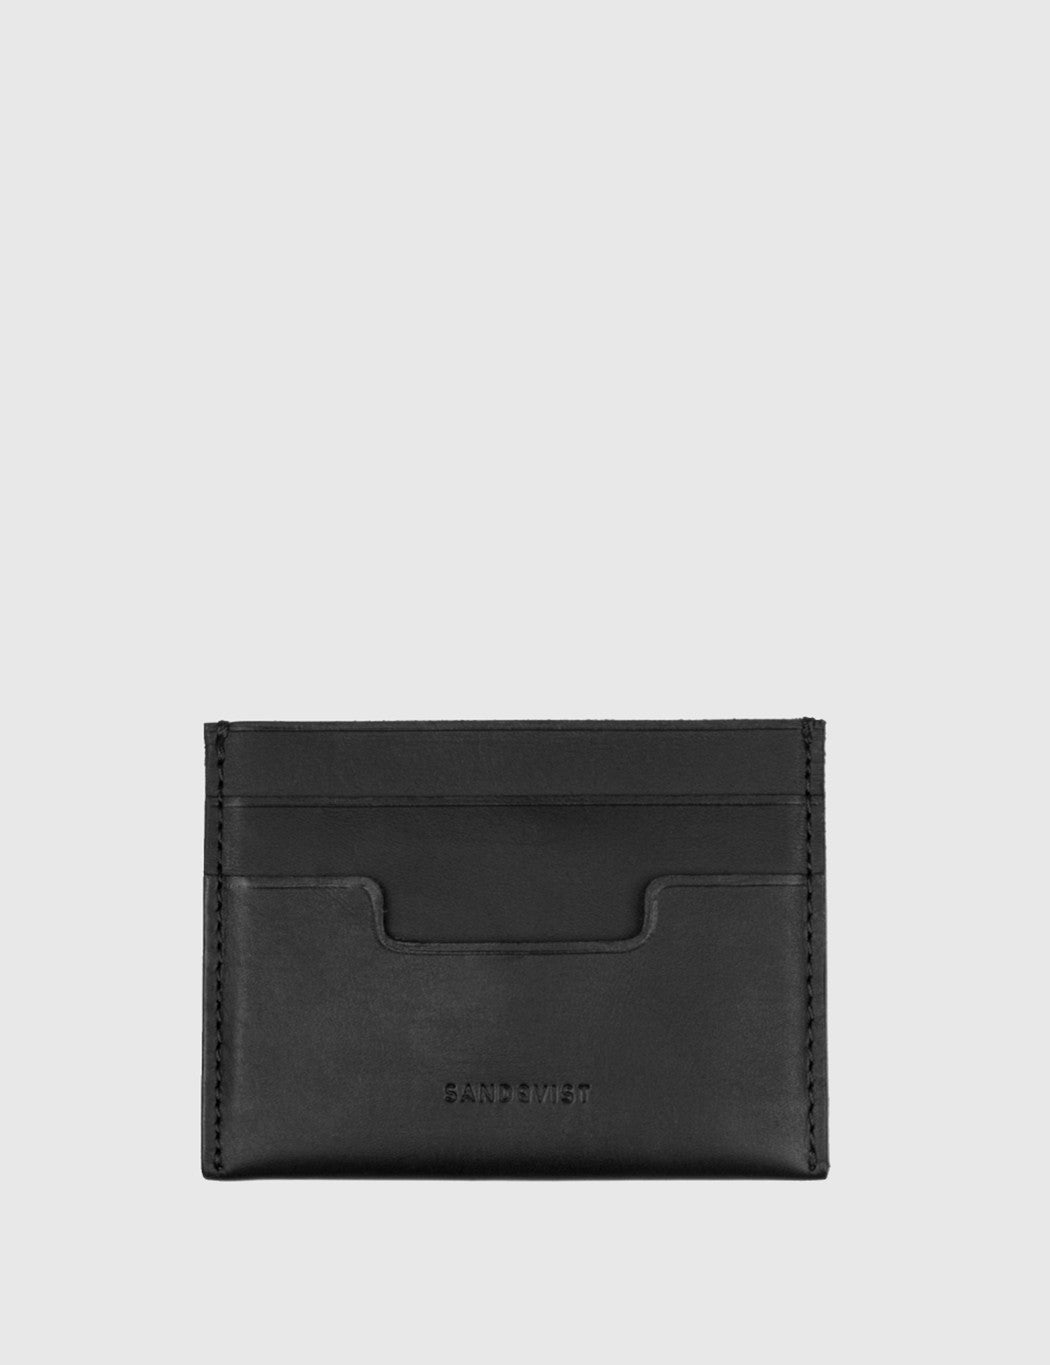 Sandqvist Buck Card Holder - Black